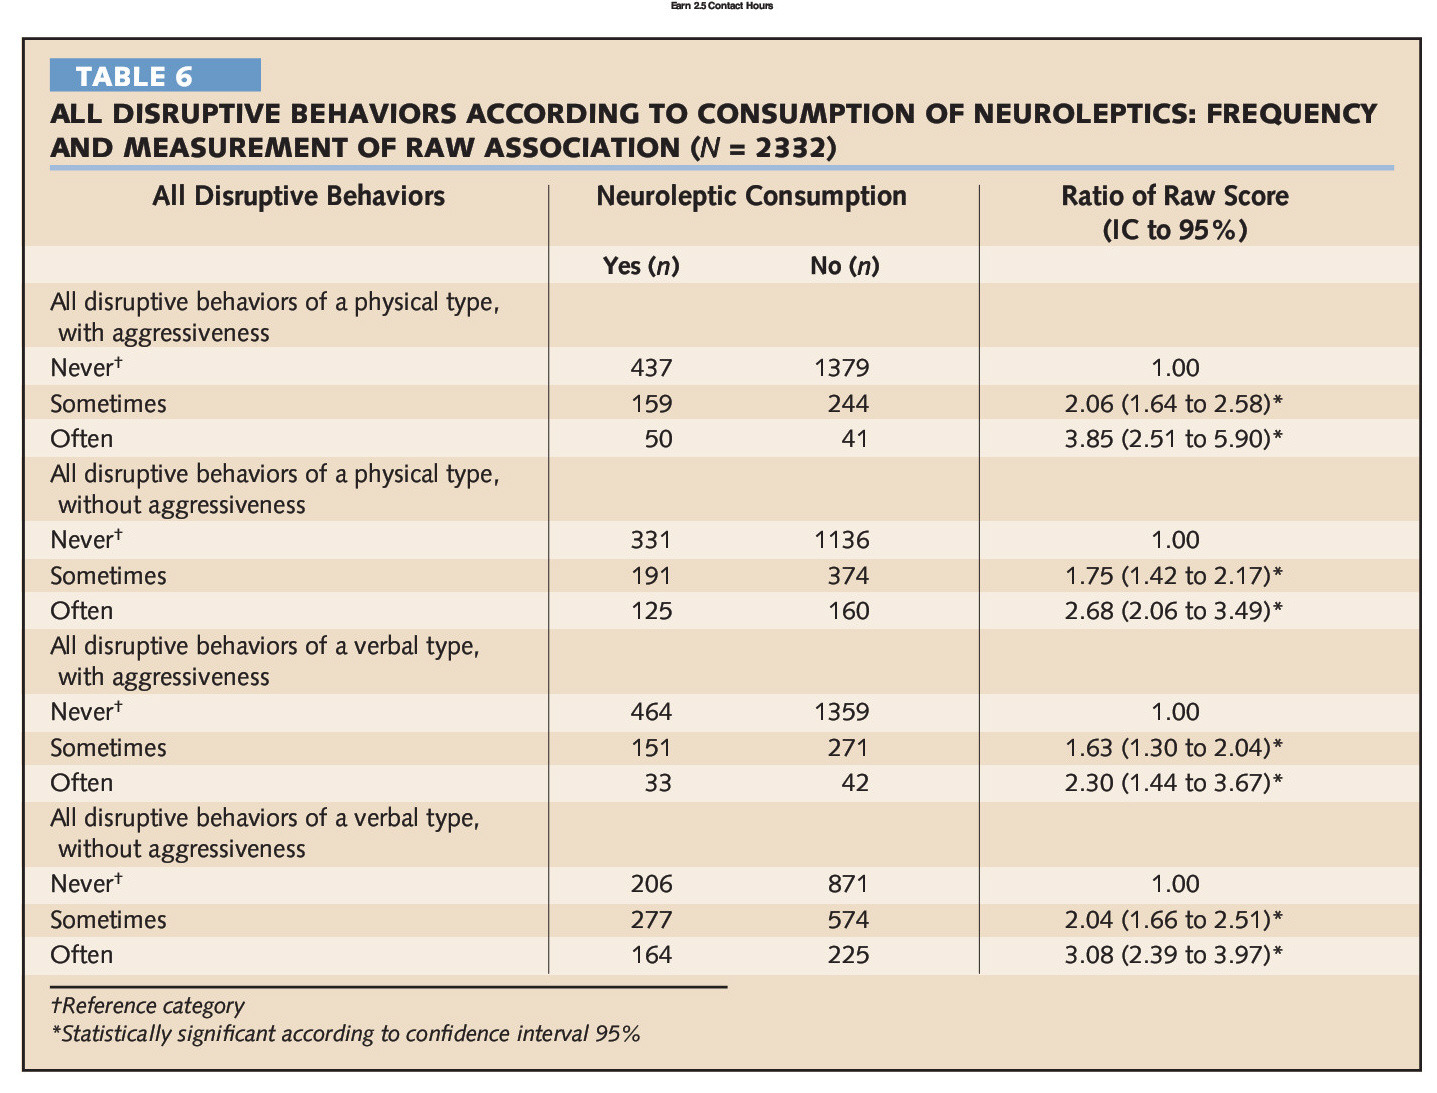 TABLE 6ALL DISRUPTIVE BEHAVIORS ACCORDING TO CONSUMPTION OF NEUROLEPTICS: FREQUENCY AND MEASUREMENT OF RAW ASSOCIATION (N = 2332)